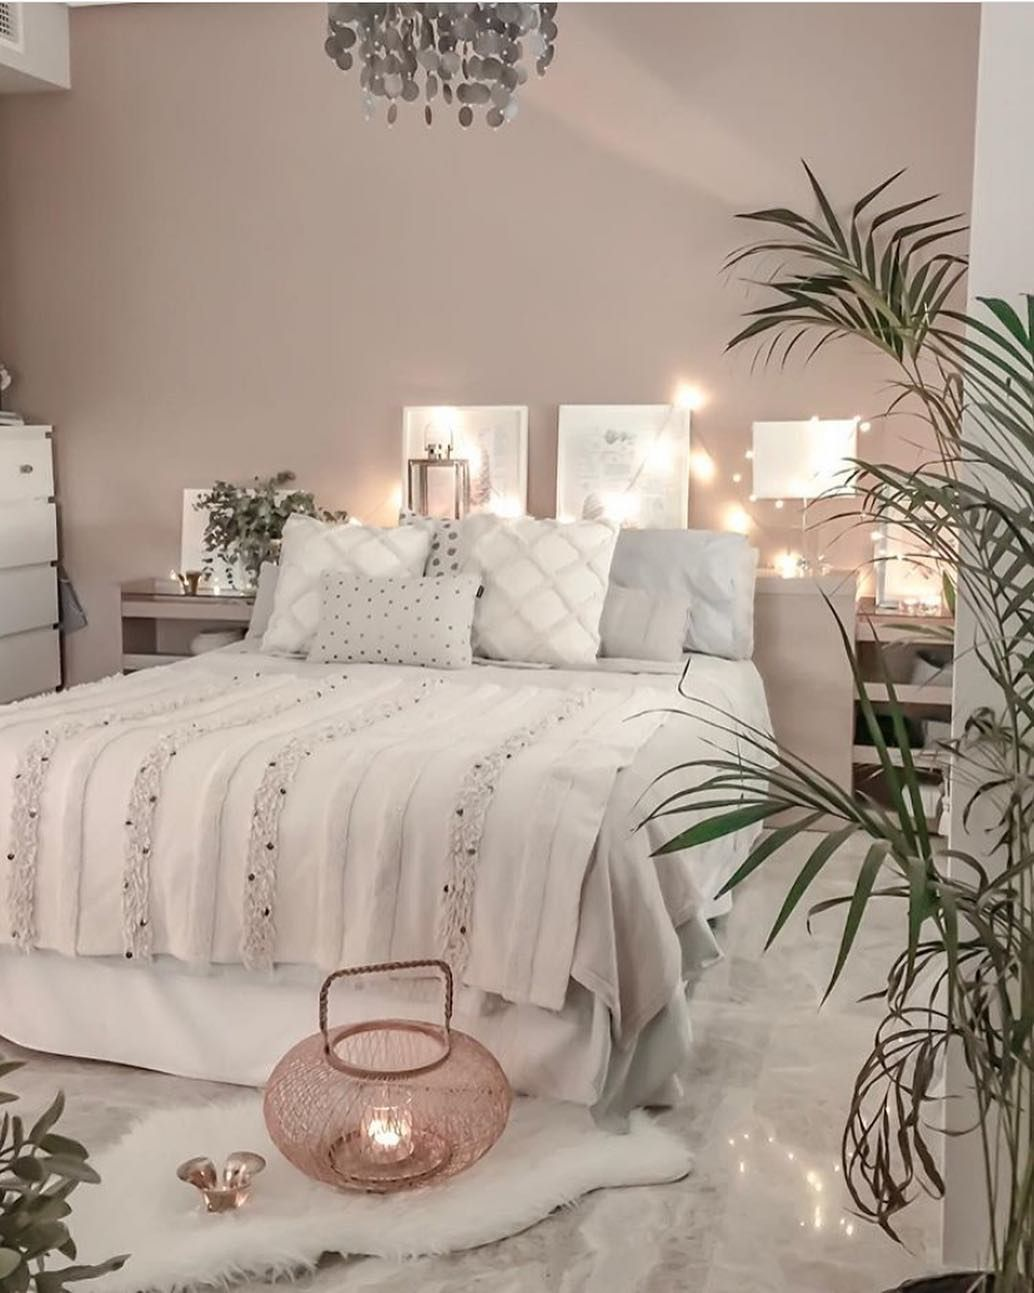 Süße Träume Schlafzimmer Inspiration Paula Silvagni Interiors Bed Bedroom Bed Schlafzimmer Inspiration Zimmer Einrichten Schlafzimmer Einrichten